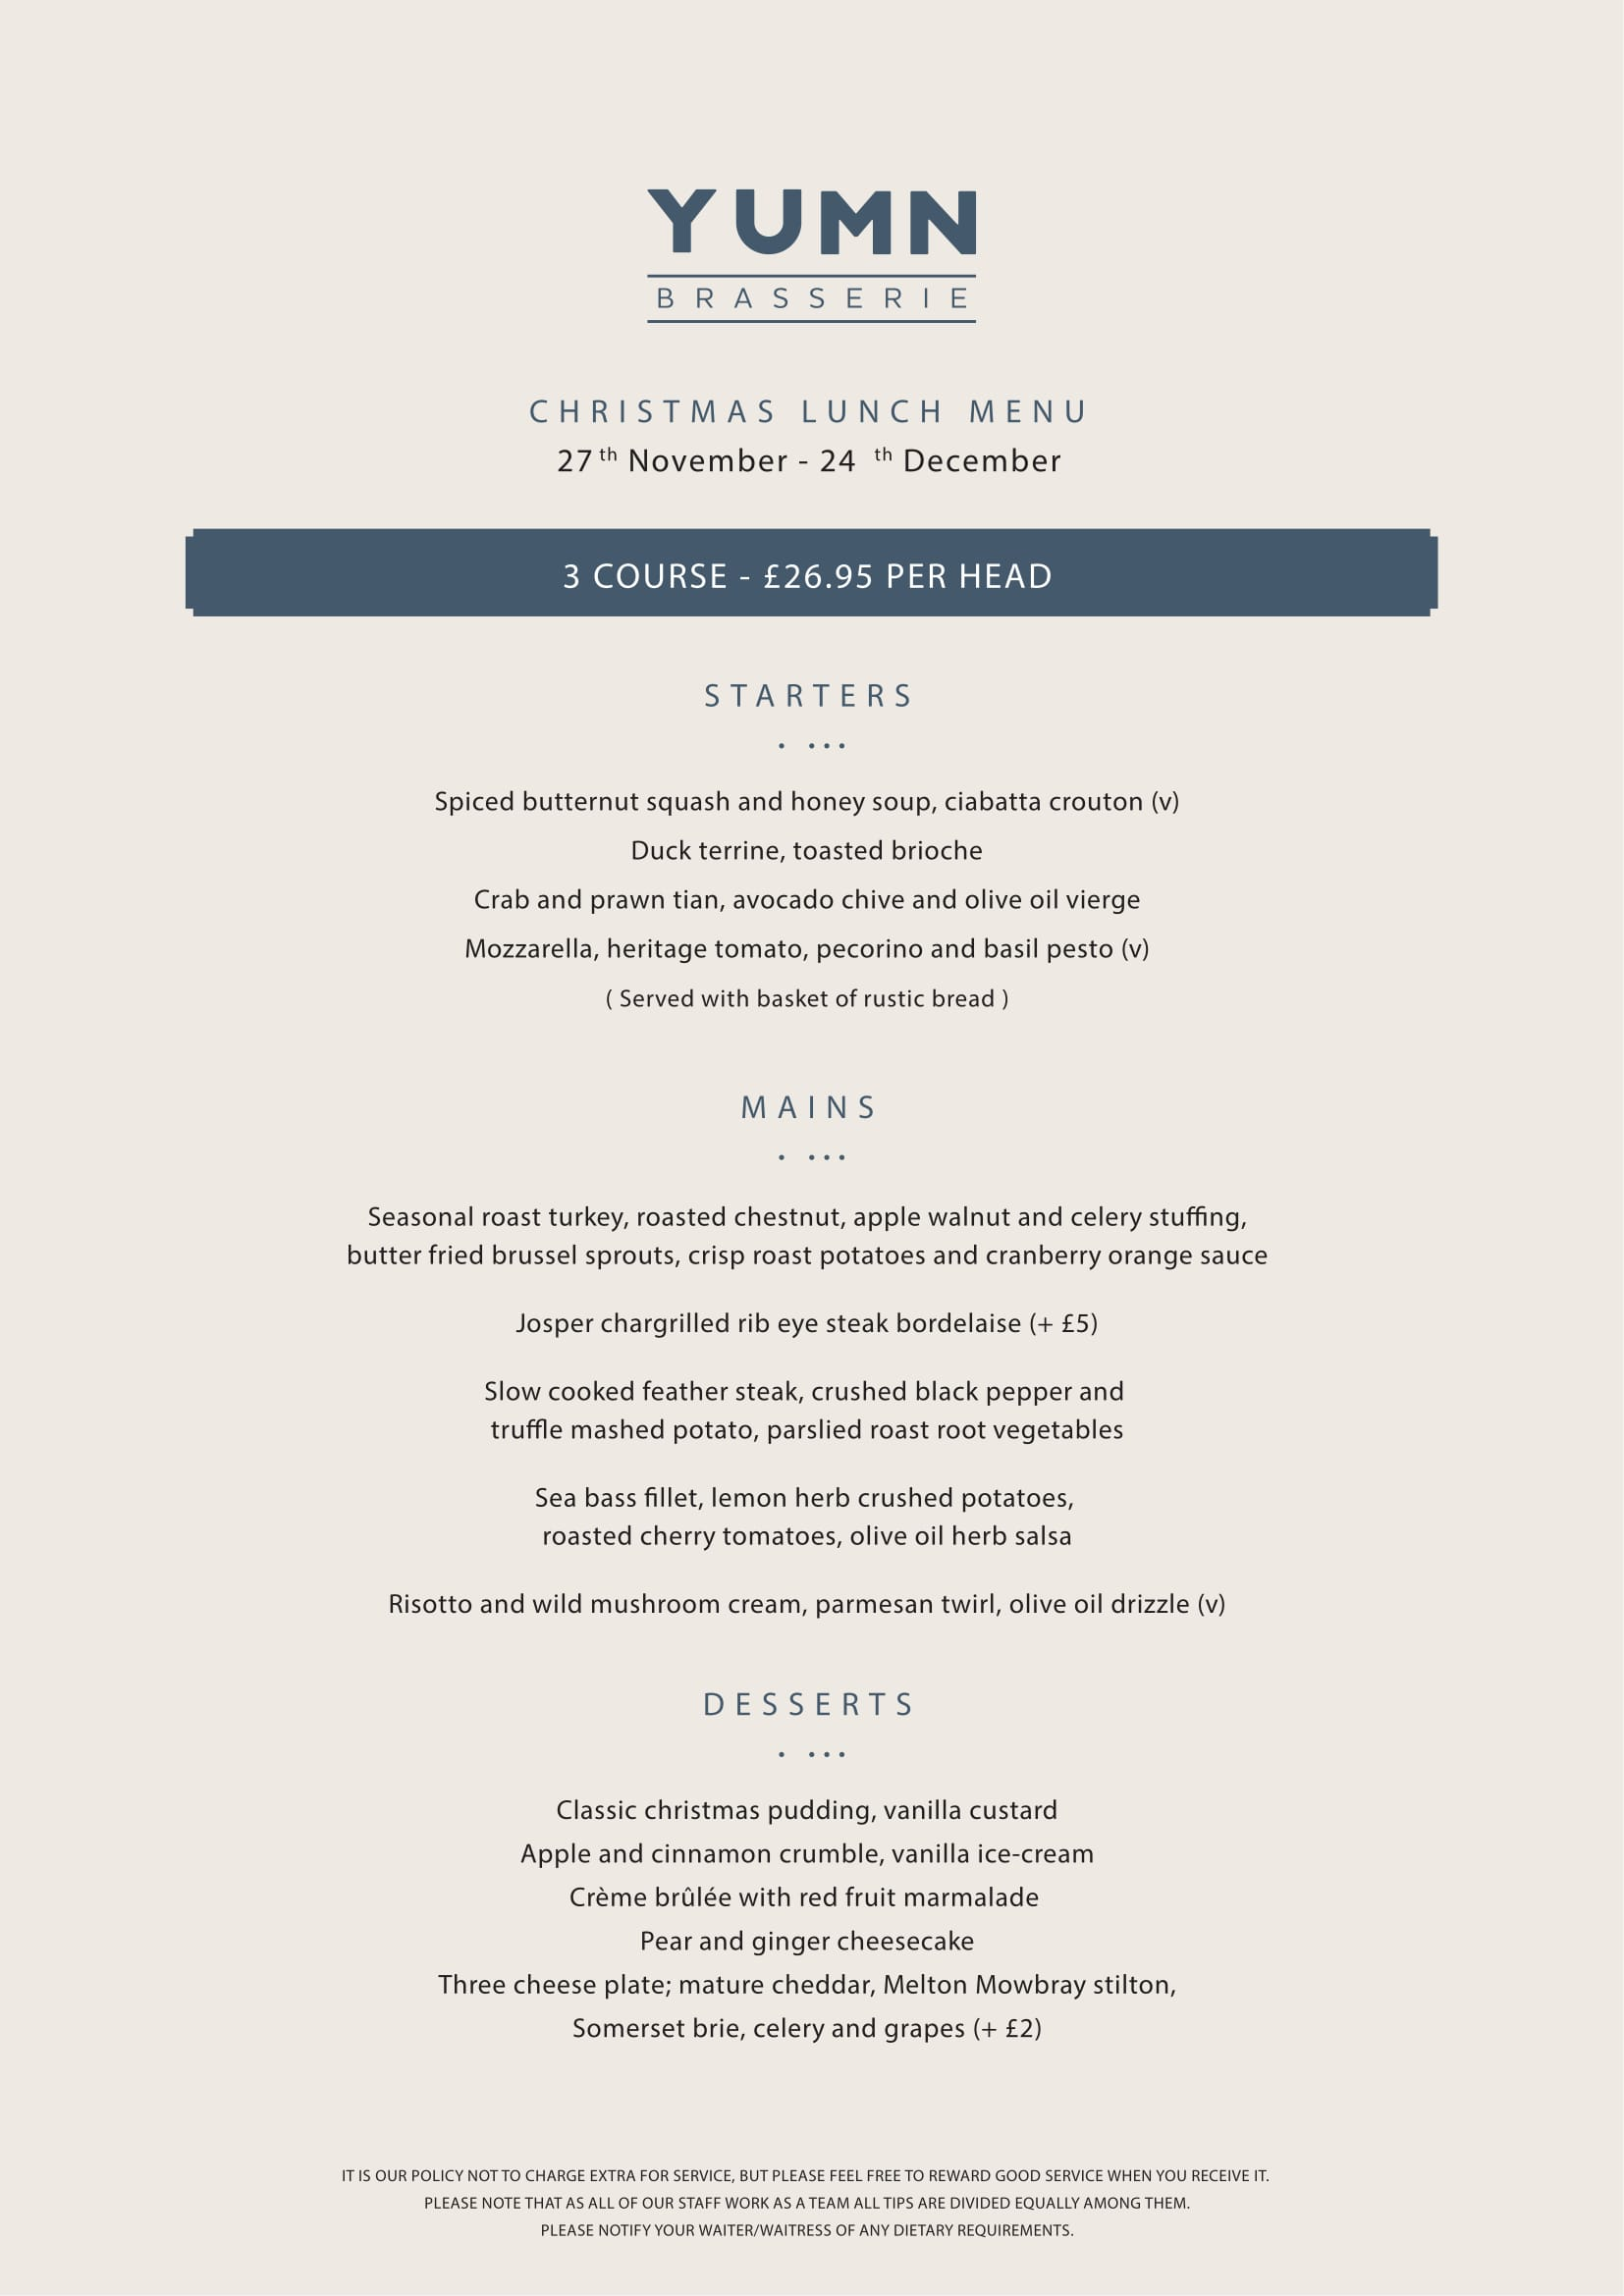 Yumn Brasserie Christmas Lunch Menu-page-001